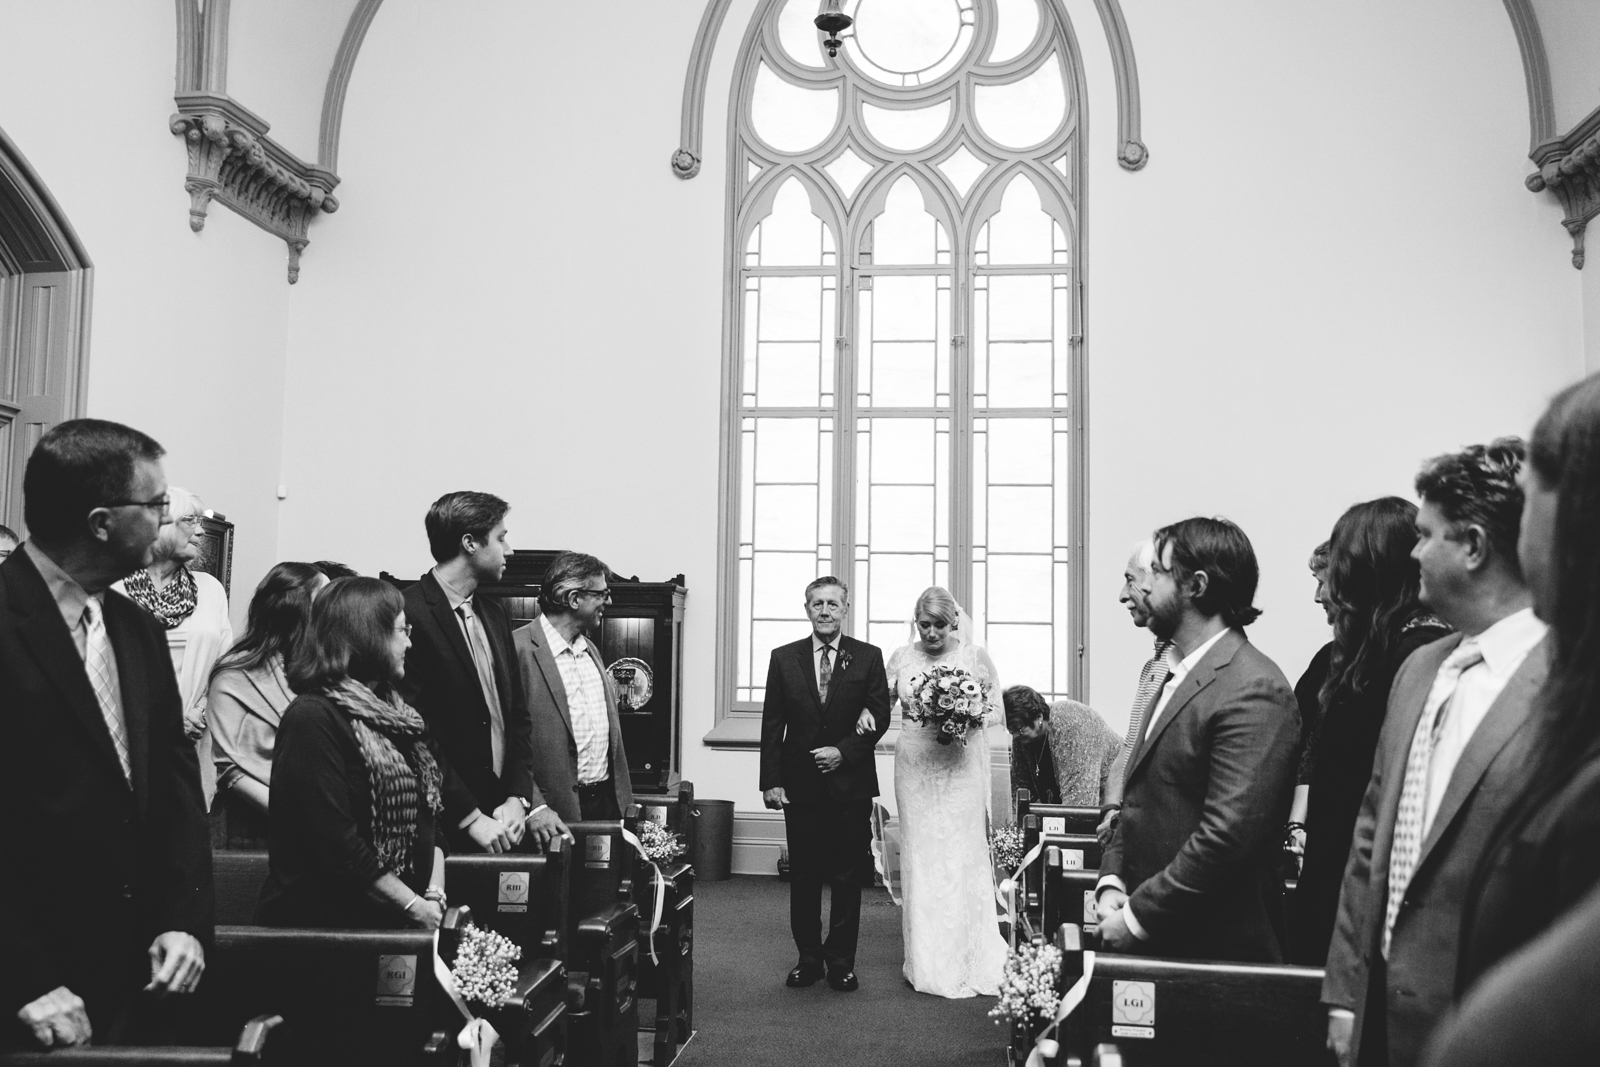 richmondvaweddingphotography-60.jpg